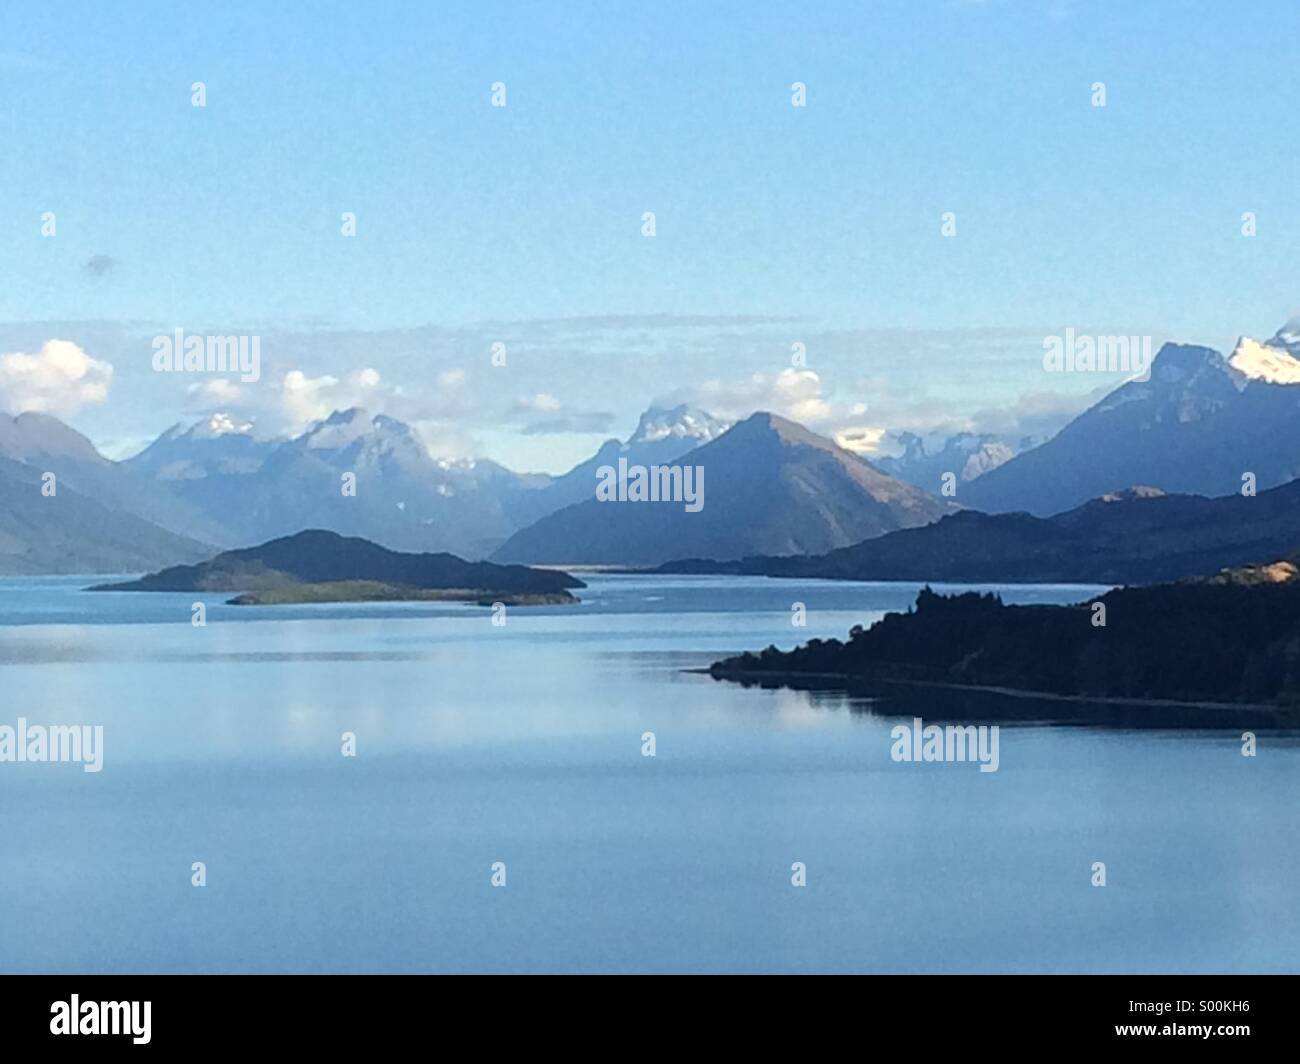 Lake Wakatipu in early morning, New Zealand. - Stock Image